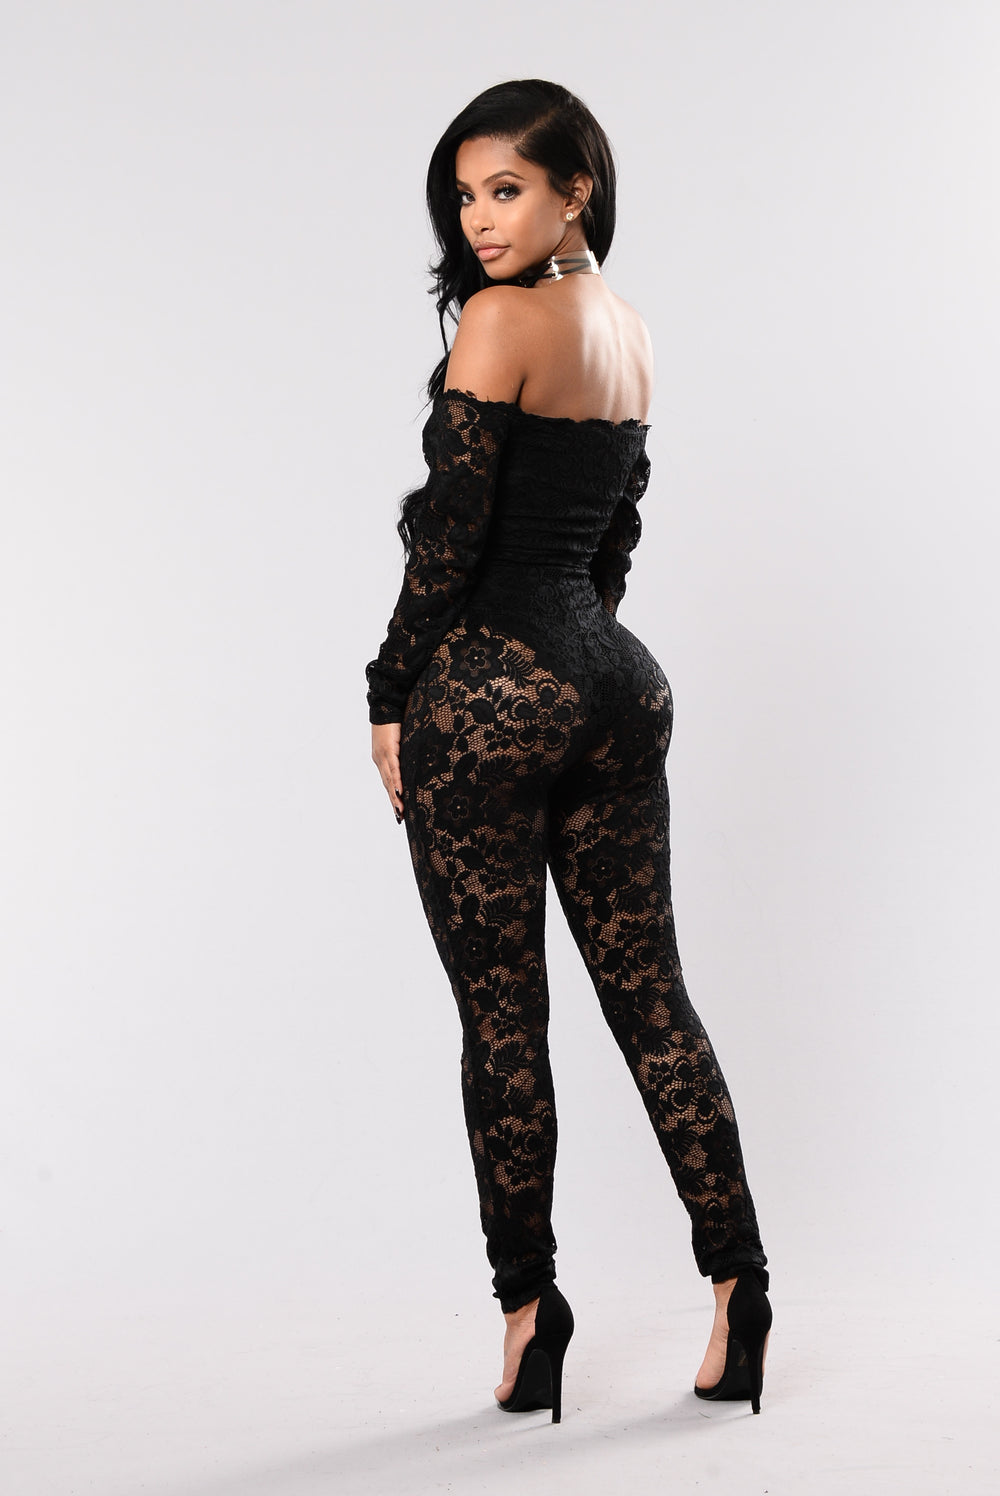 The Sweetest Taboo Jumpsuit - Black